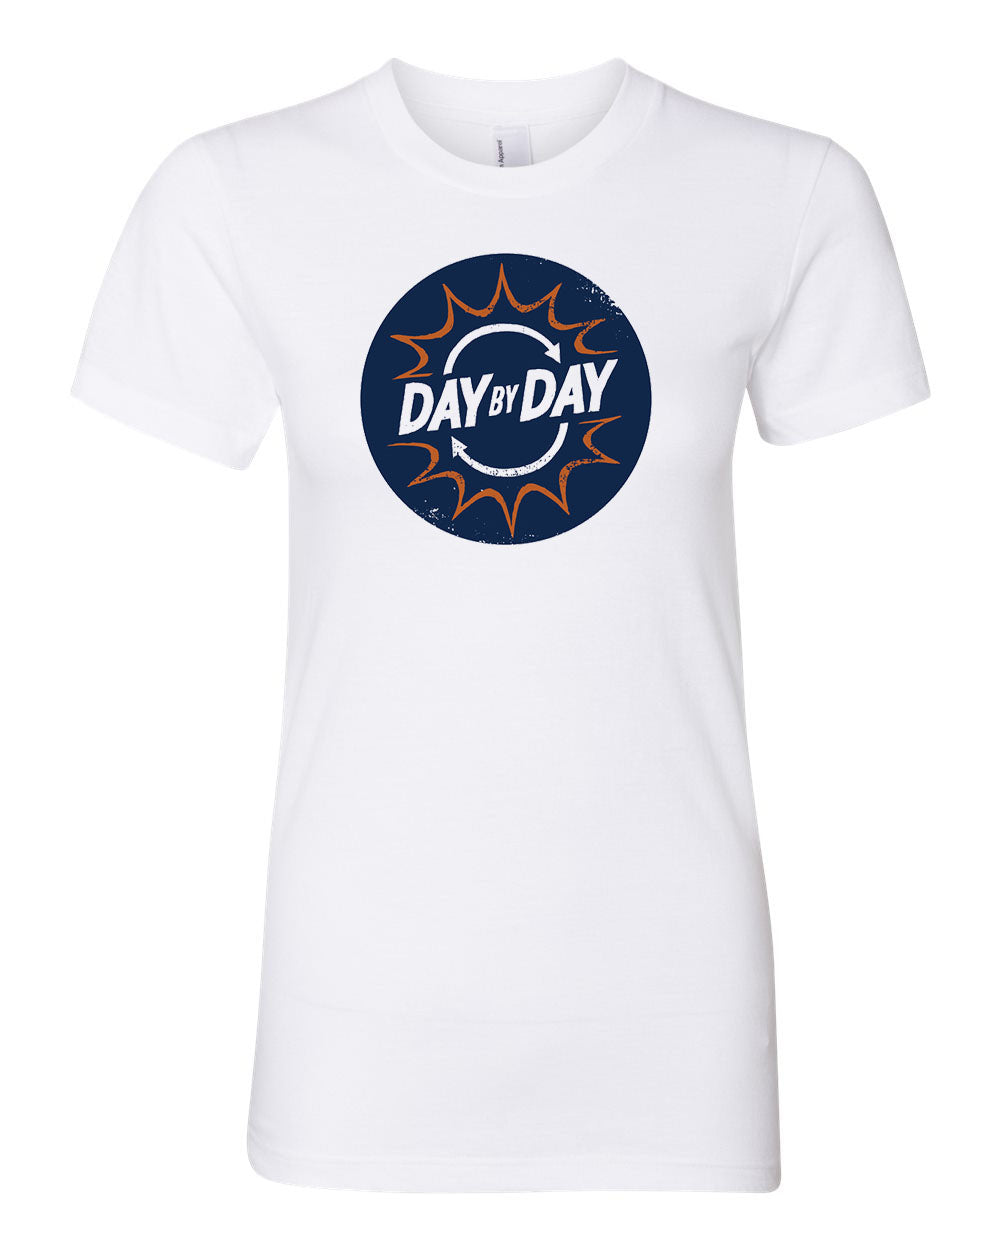 Women's Day to Day T-Shirt